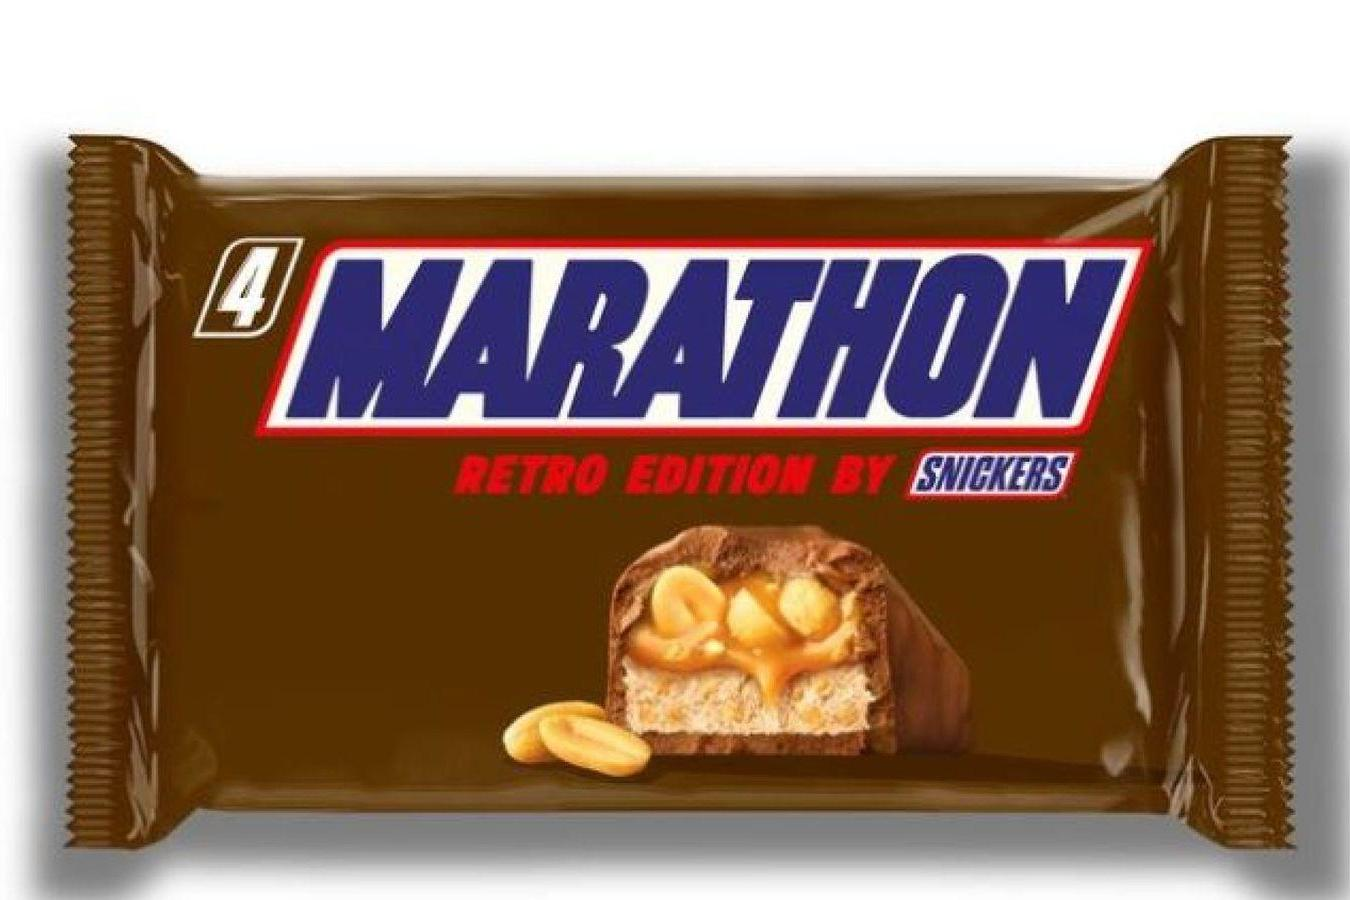 Snickers bars to be called Marathon again after nearly 30 years